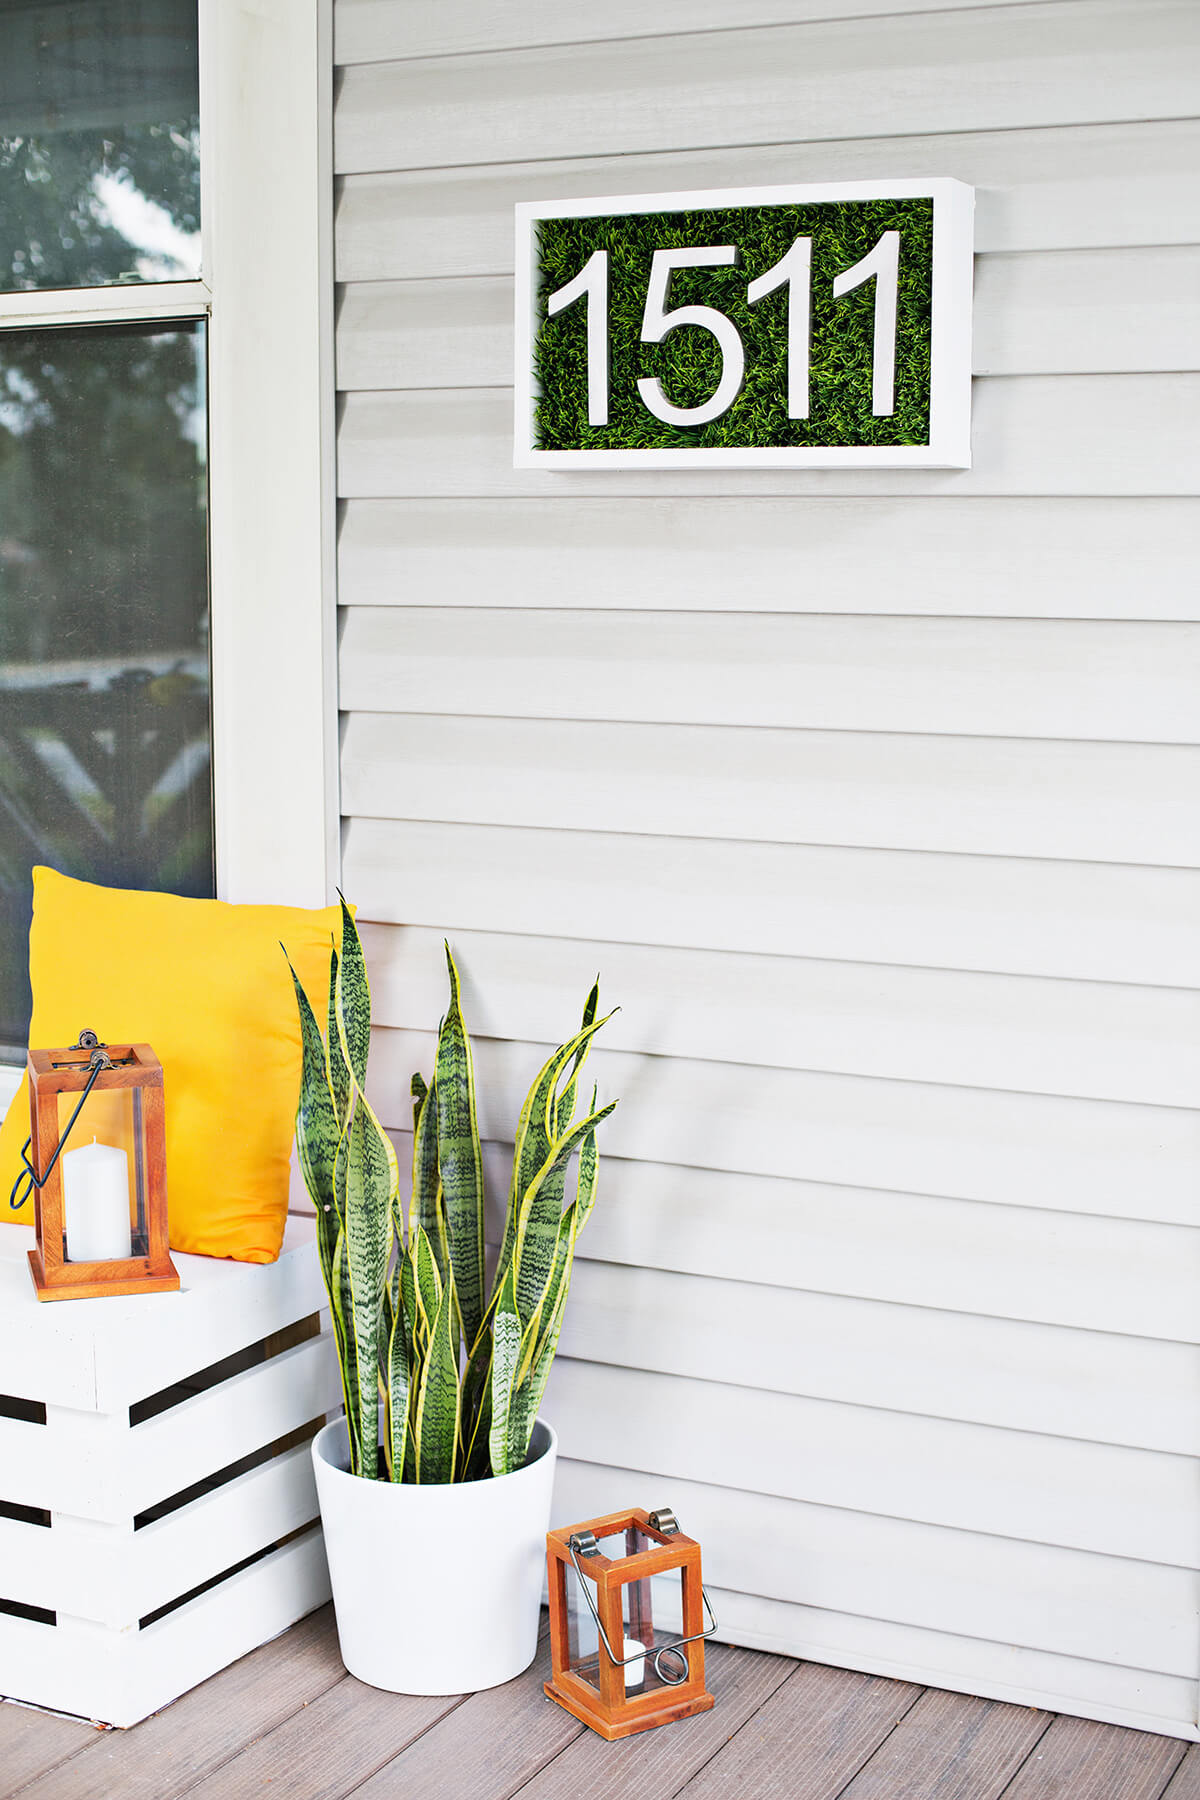 A Patch of Grass on Off-White Siding